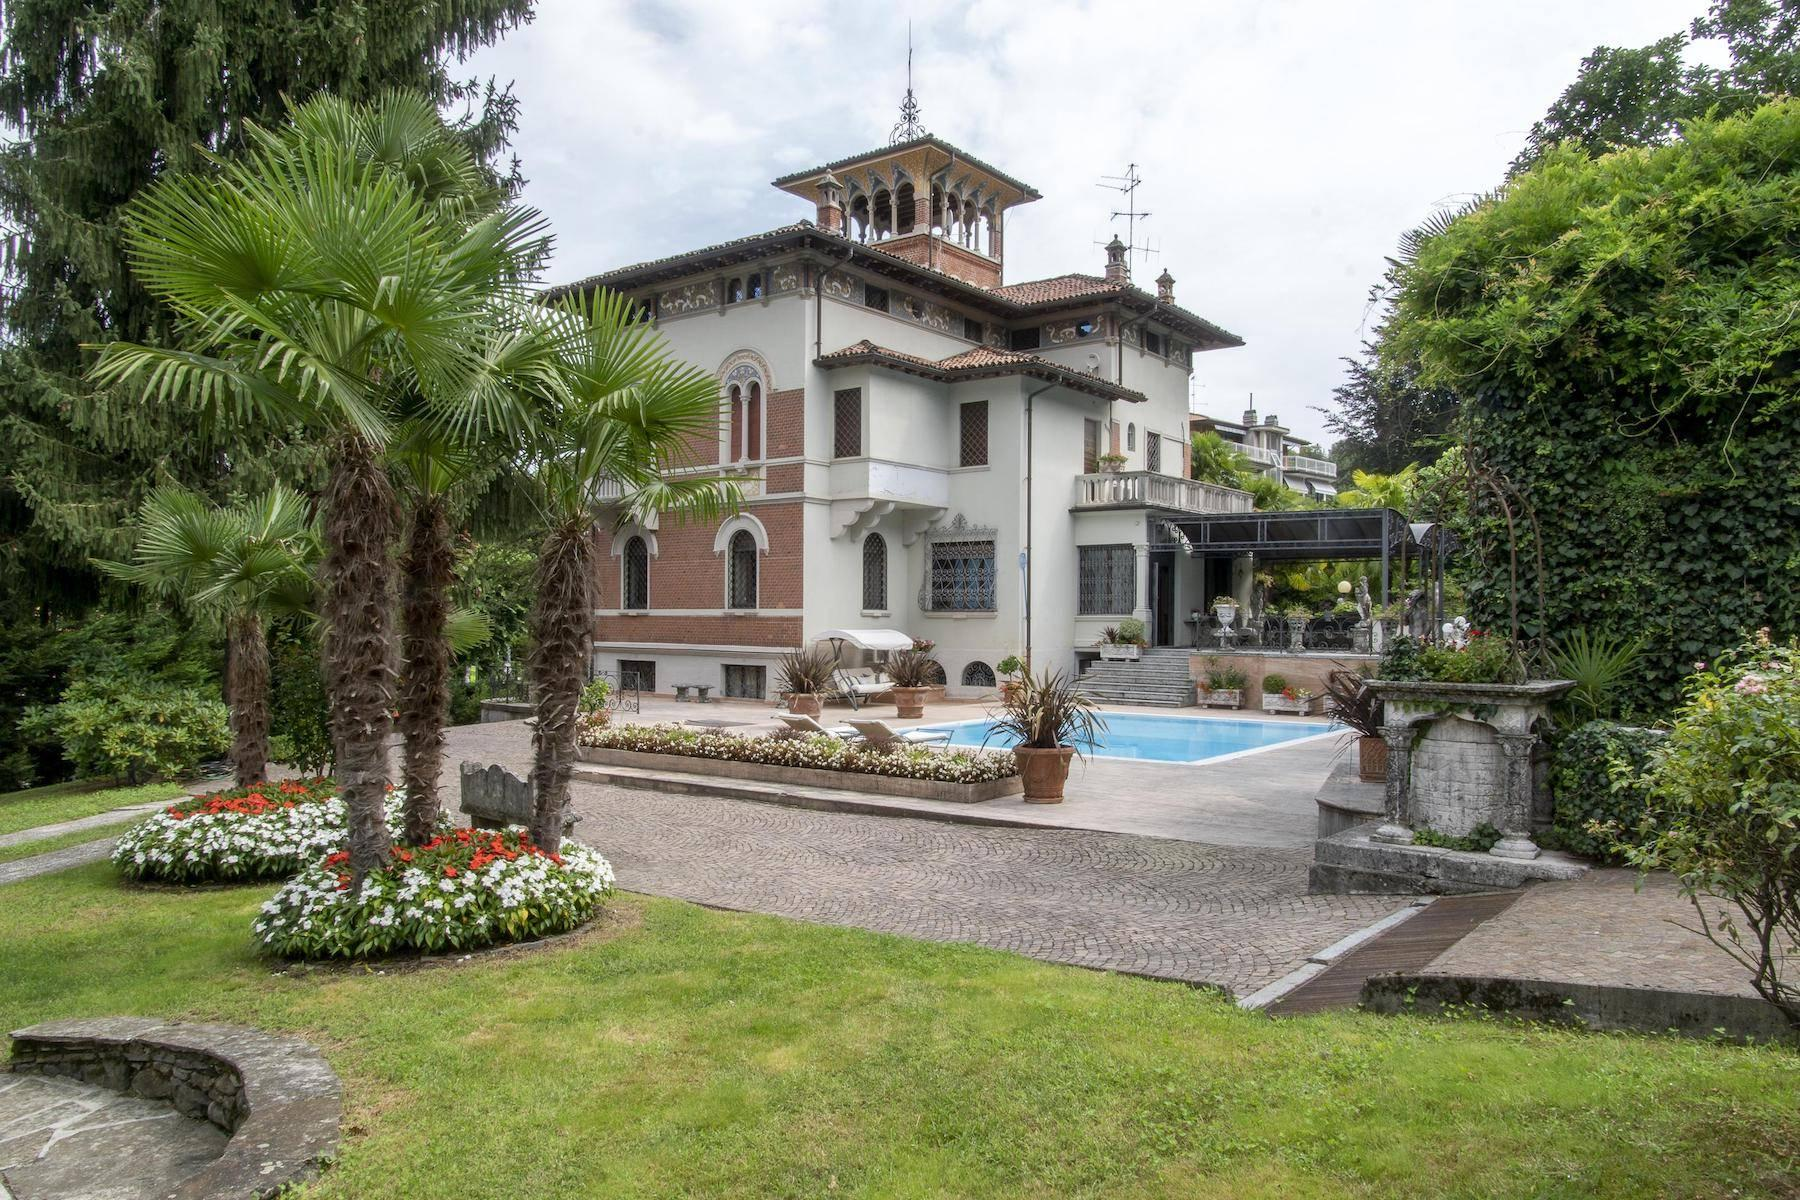 Majestic period villa with swimming pool and tower in the heart of Stresa - 10